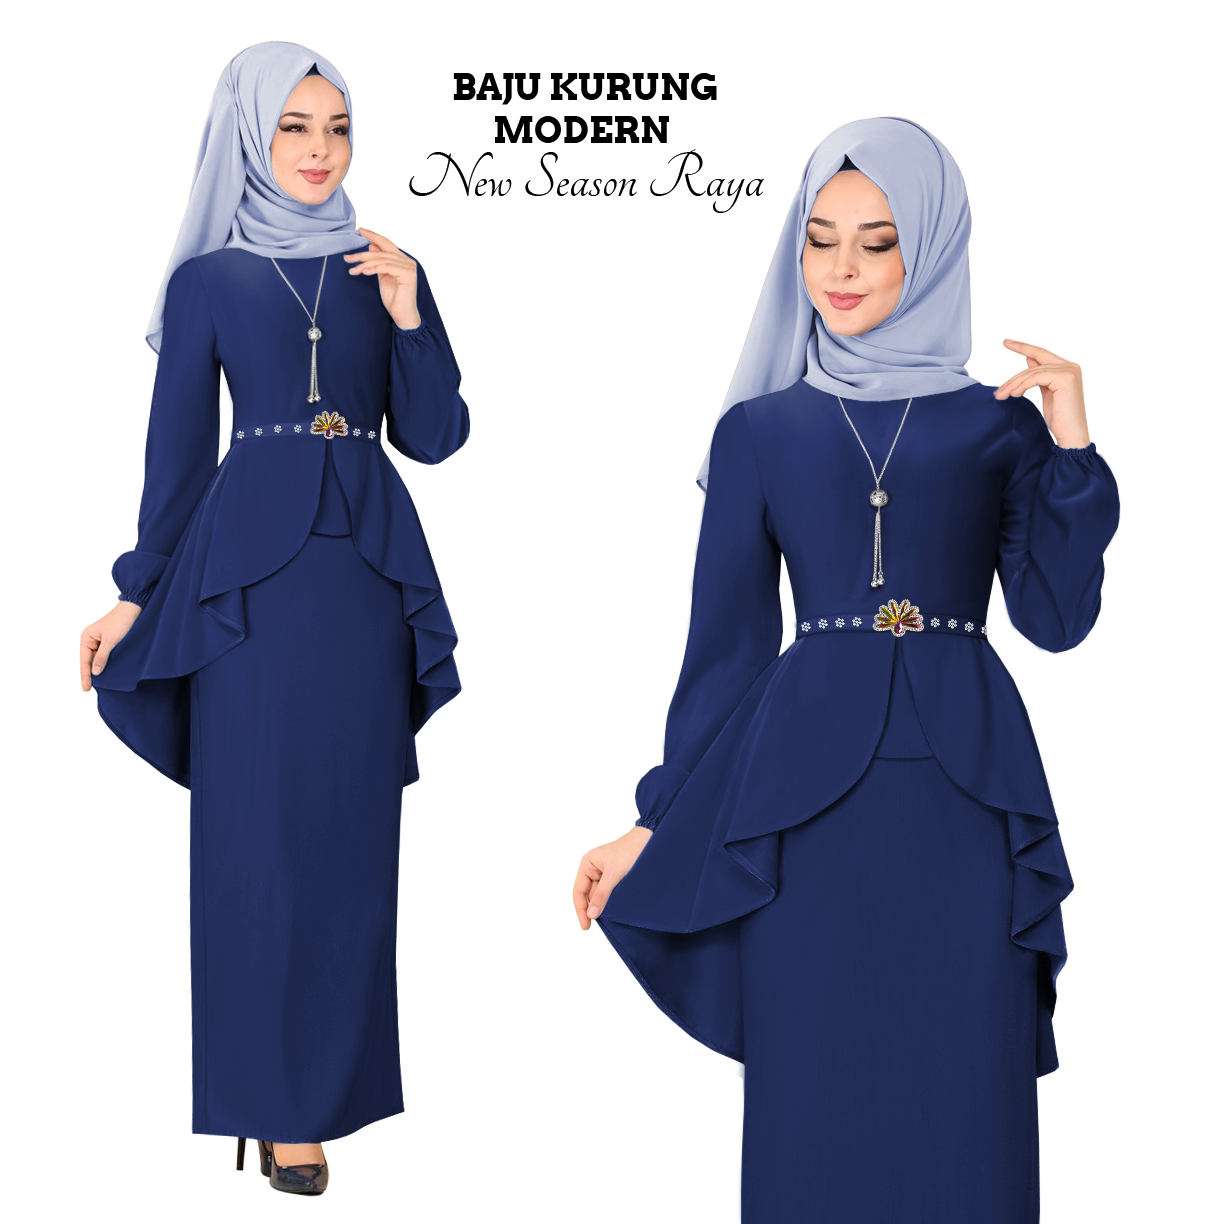 Harga KM Fashion Baju Kurung Modern New Season Baju Raya ( Hot & Trendy ) ( Ready Stock ) 2020